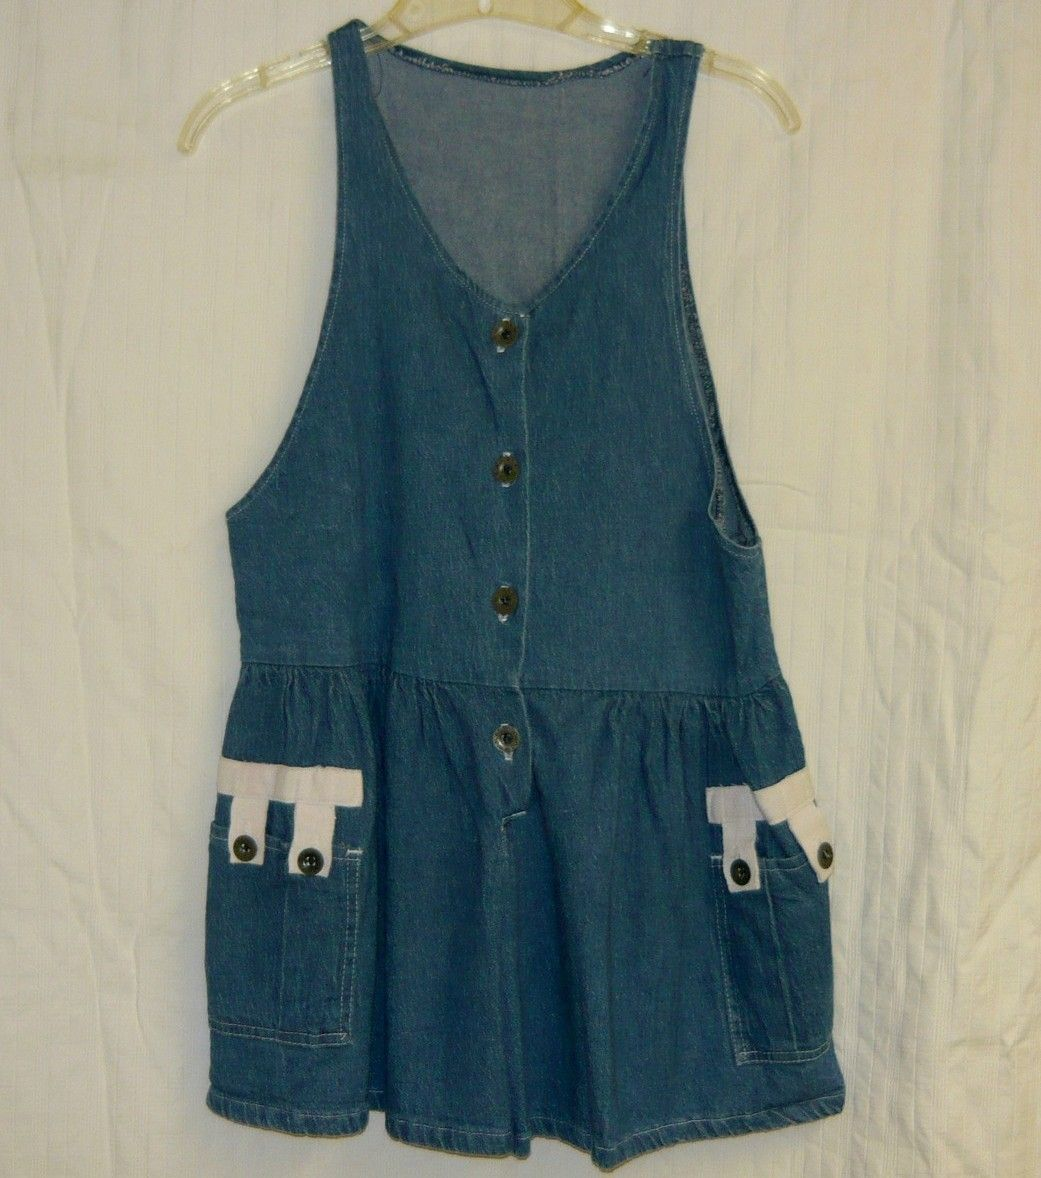 SALE~VINTAGE Denim Playsuit Sz. M